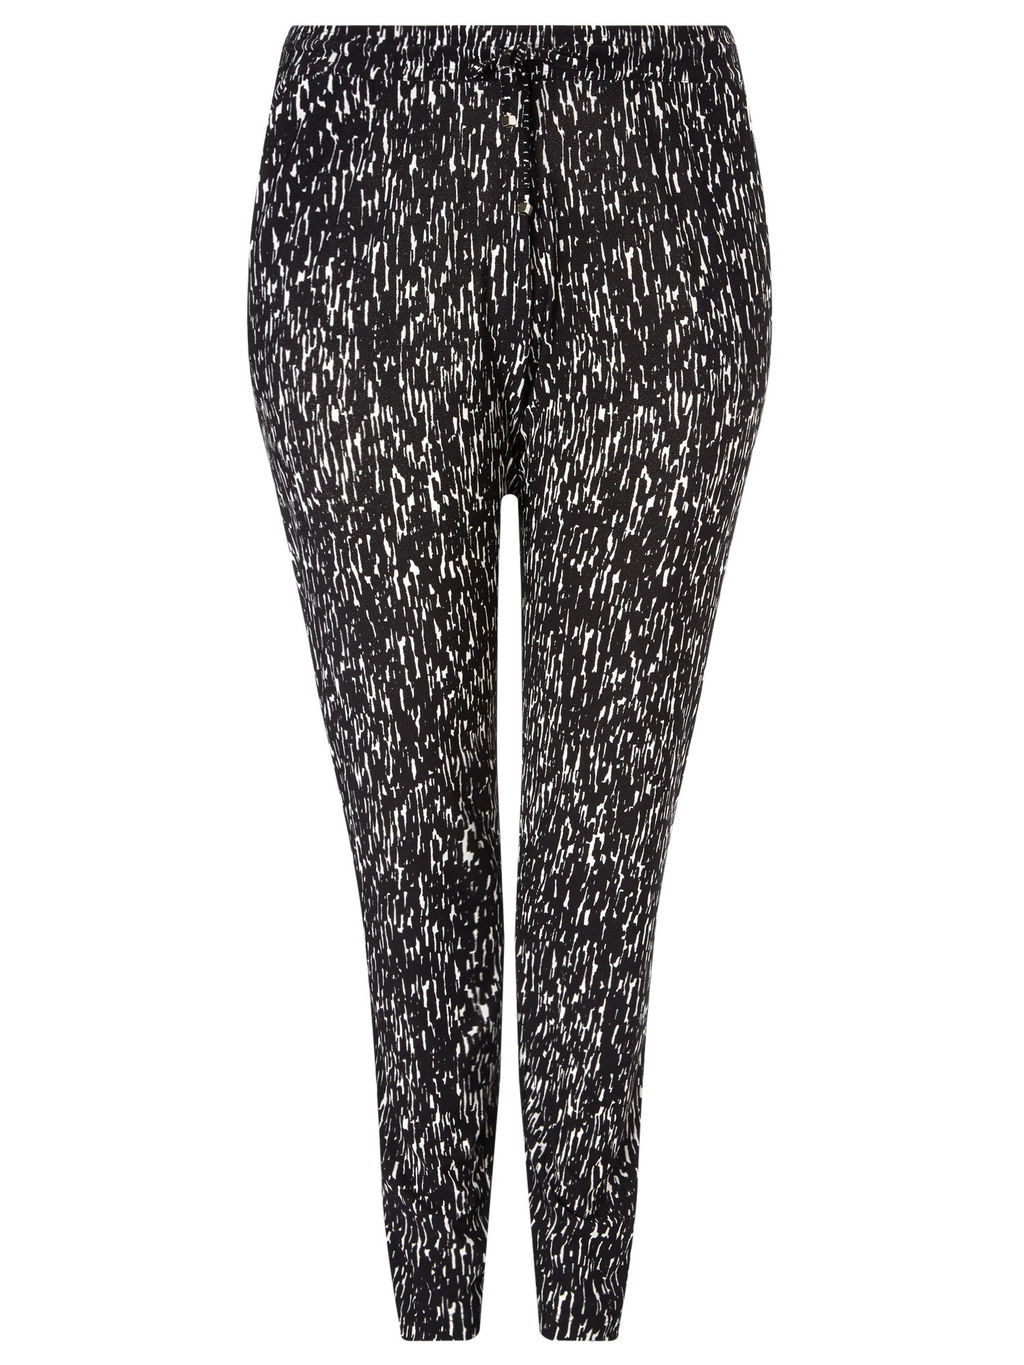 Bark Print Jersey Trouser - length: standard; style: harem/slouch; waist detail: belted waist/tie at waist/drawstring; waist: mid/regular rise; secondary colour: mid grey; predominant colour: black; occasions: casual; fibres: polyester/polyamide - stretch; fit: tapered; pattern type: fabric; pattern: patterned/print; texture group: jersey - stretchy/drapey; multicoloured: multicoloured; season: a/w 2015